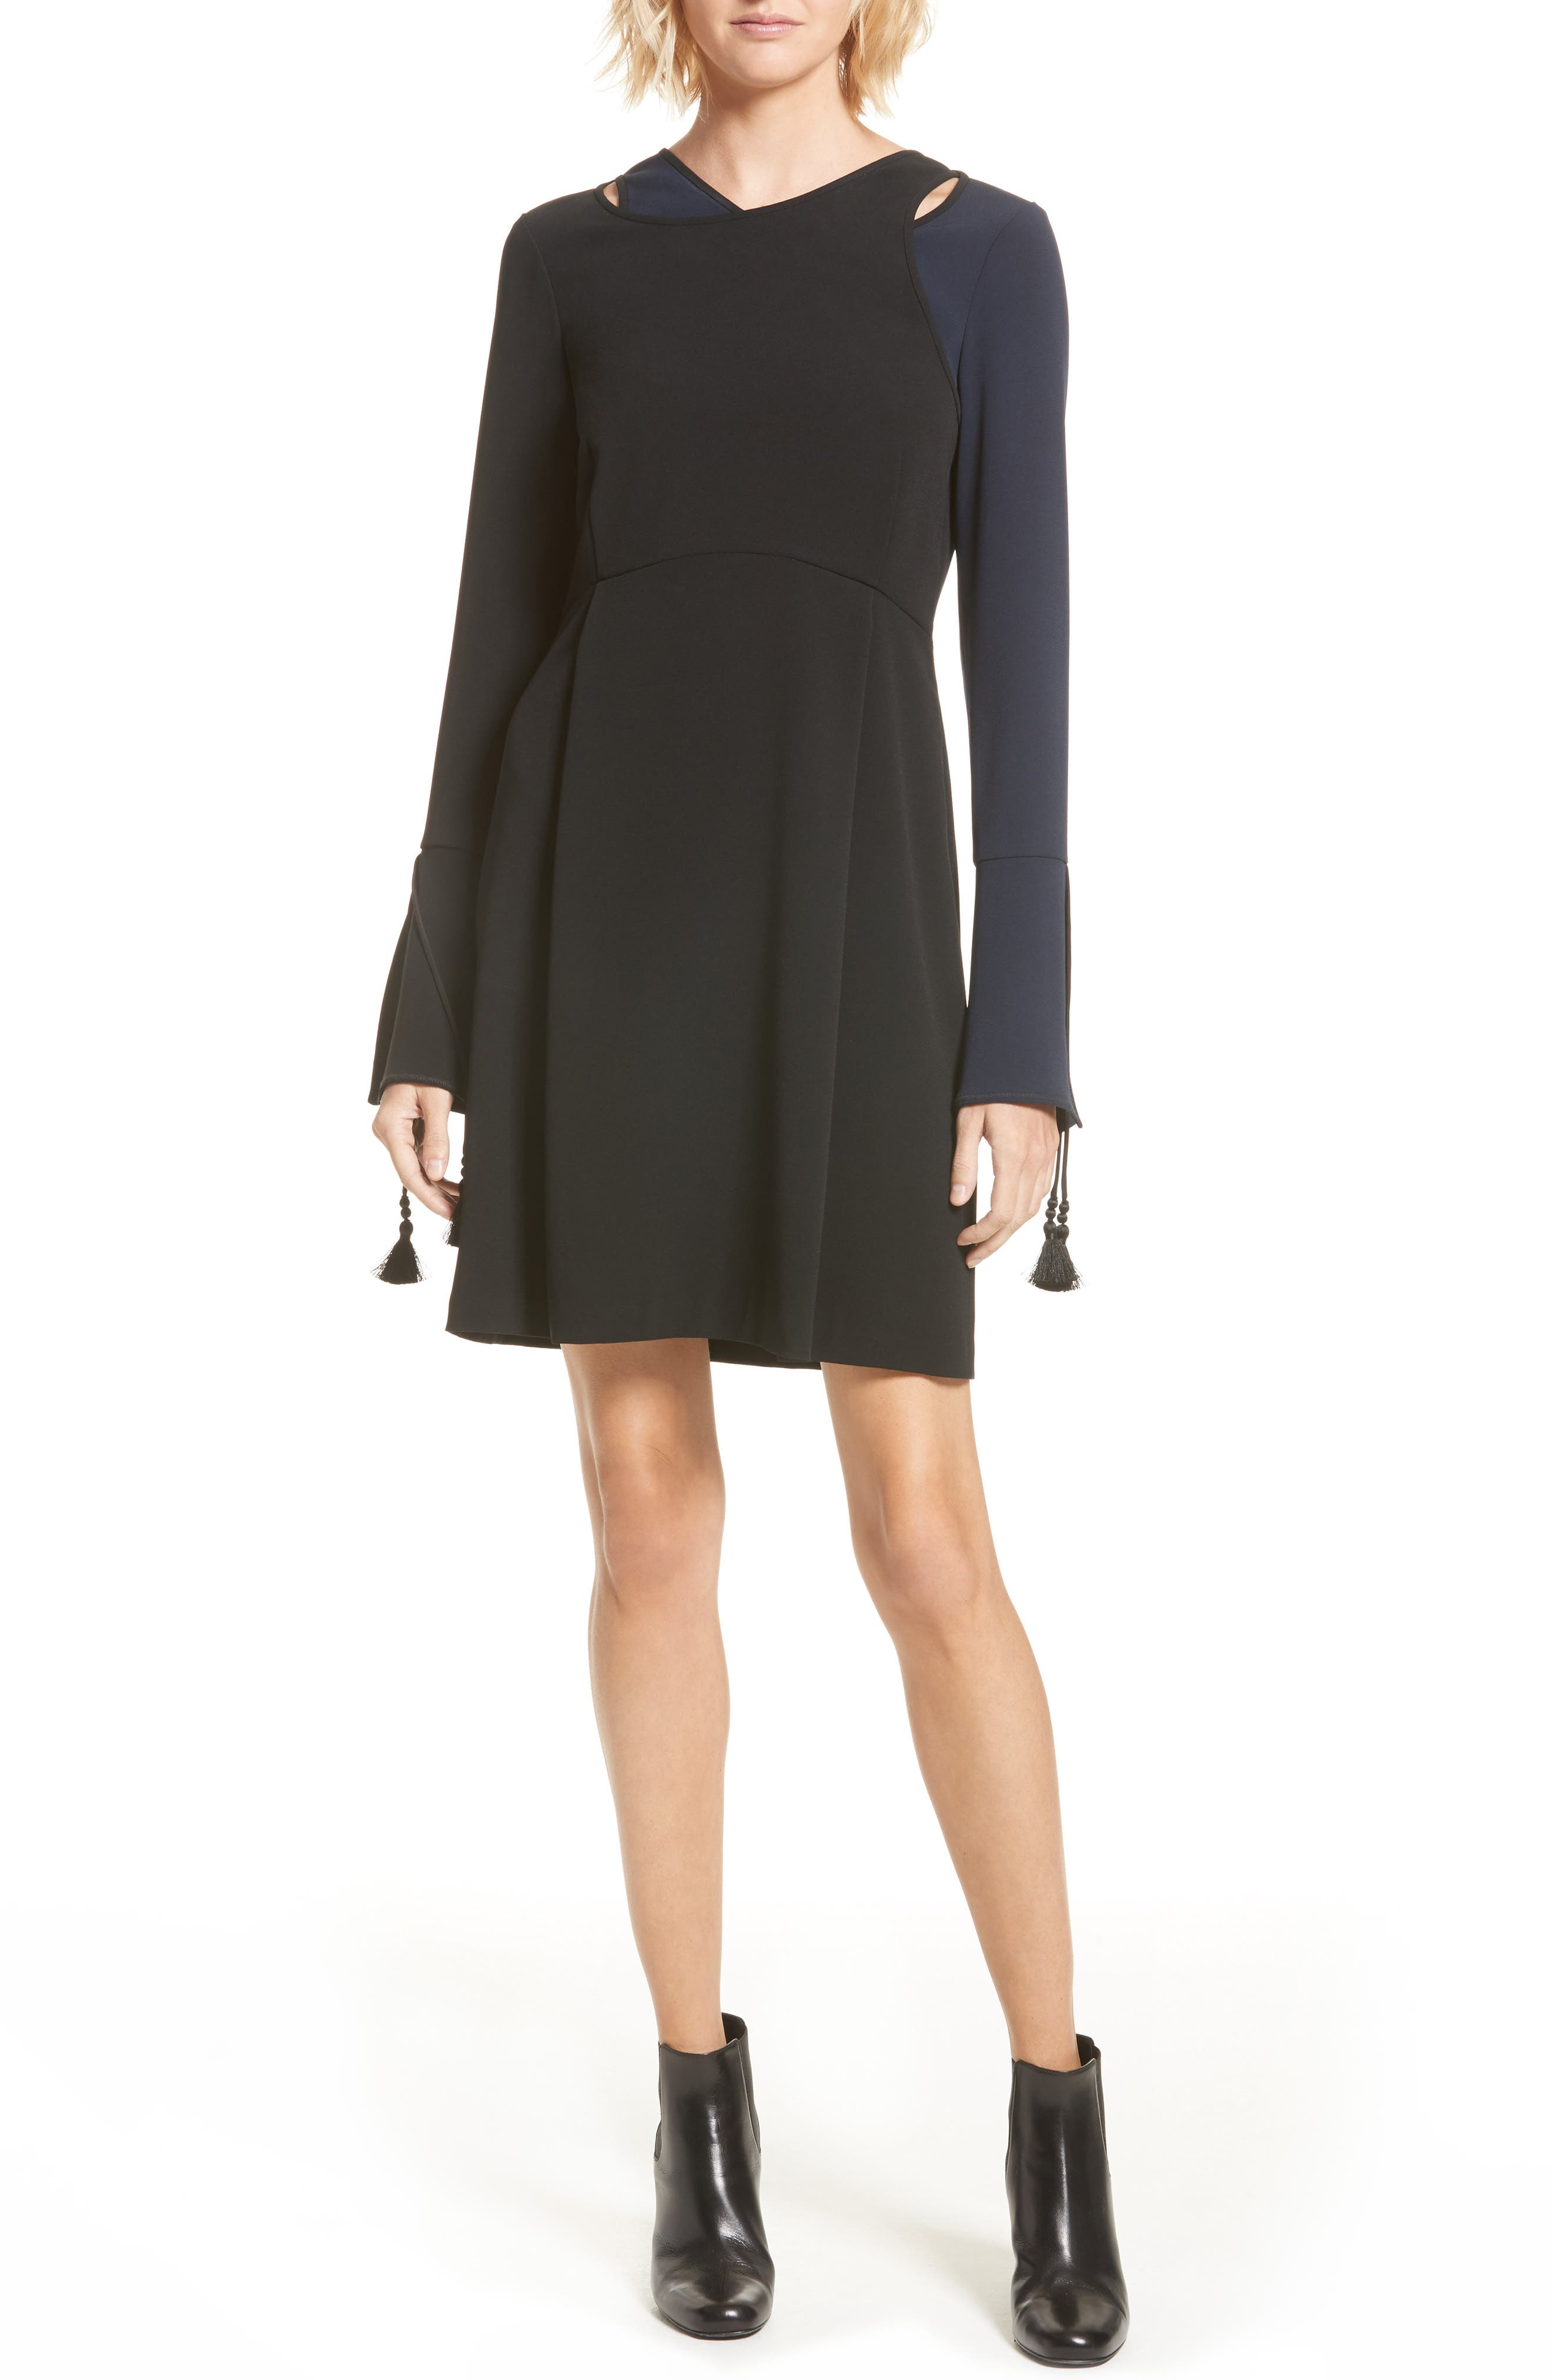 Derek Lam 10 Crosby Bell Sleeve Asymmetrical Dress